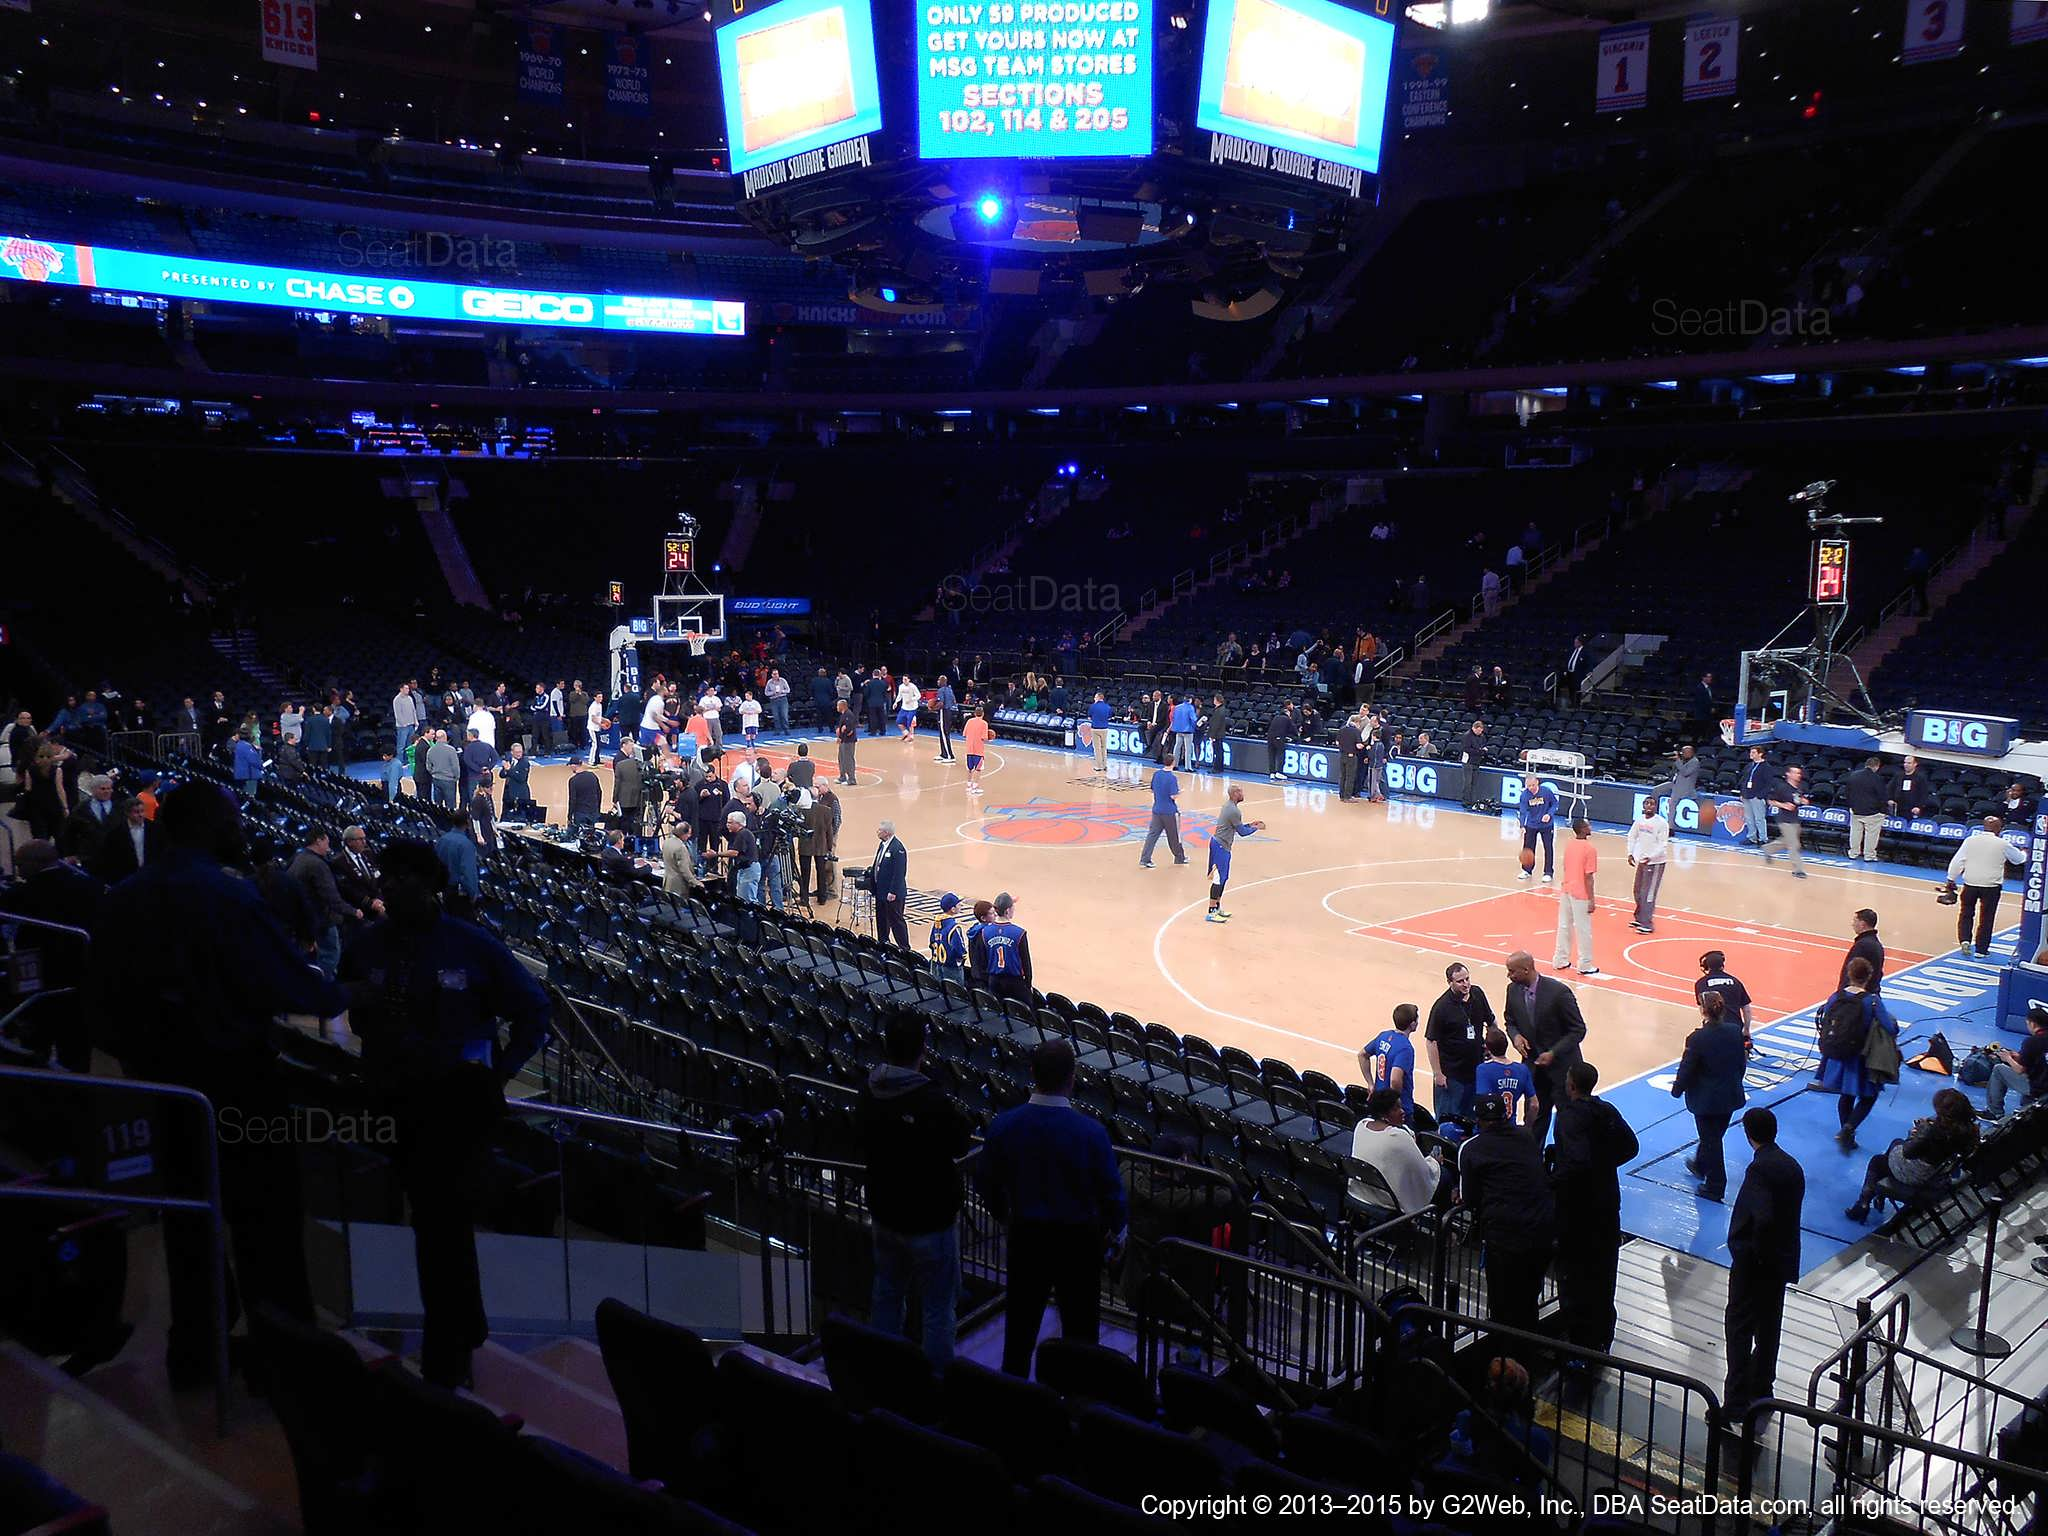 Seat view from section 119 at Madison Square Garden, home of the New York Knicks.